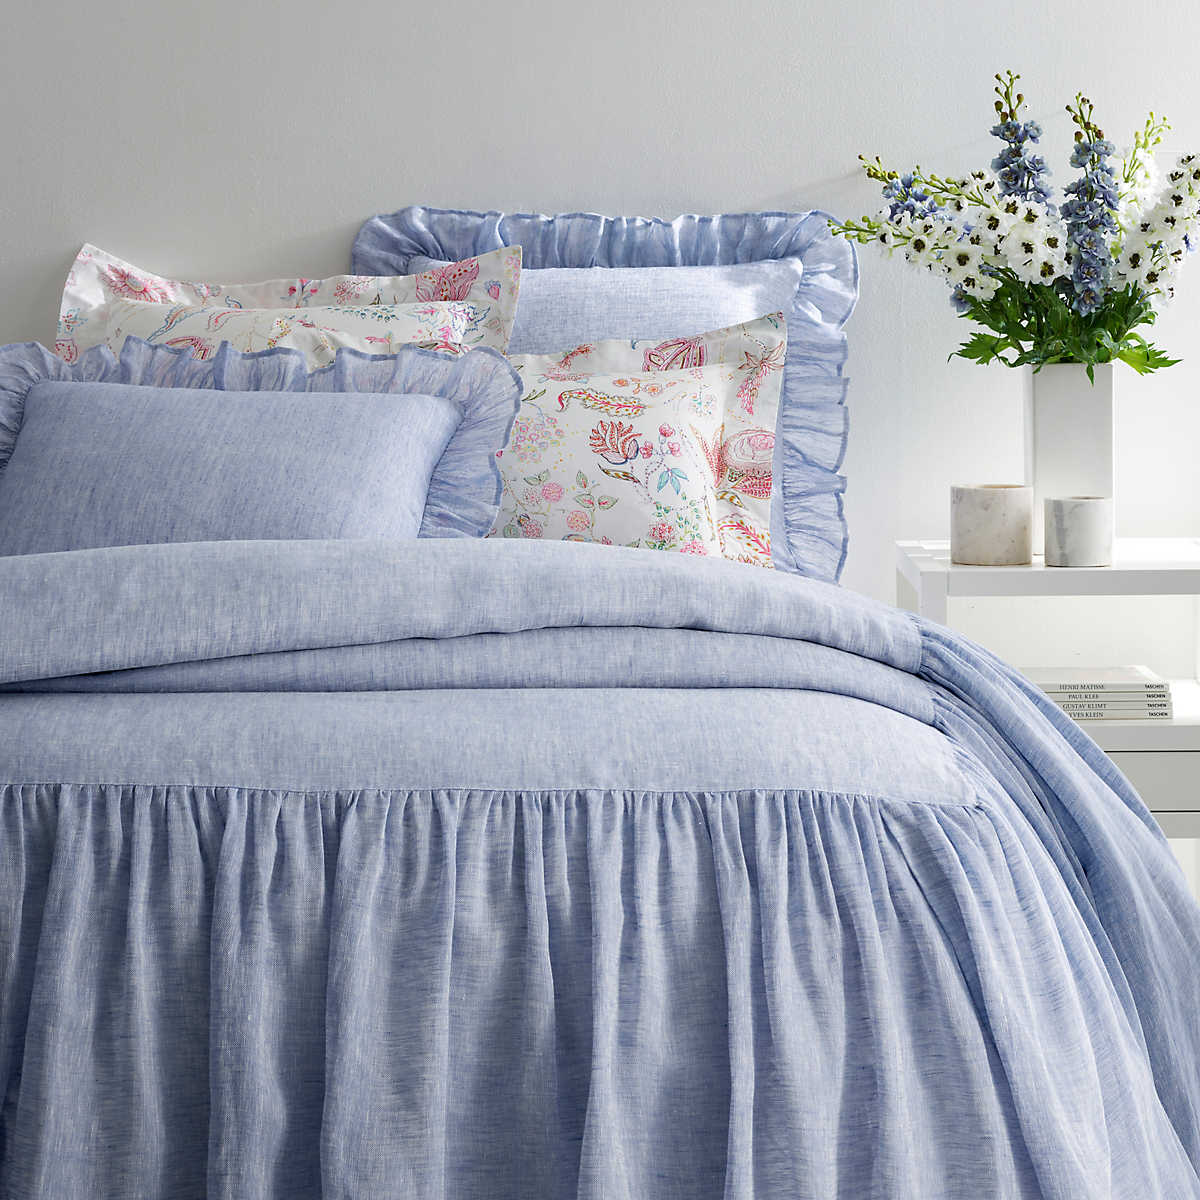 Savannah Linen Chambray French Blue Bedspread The Outlet